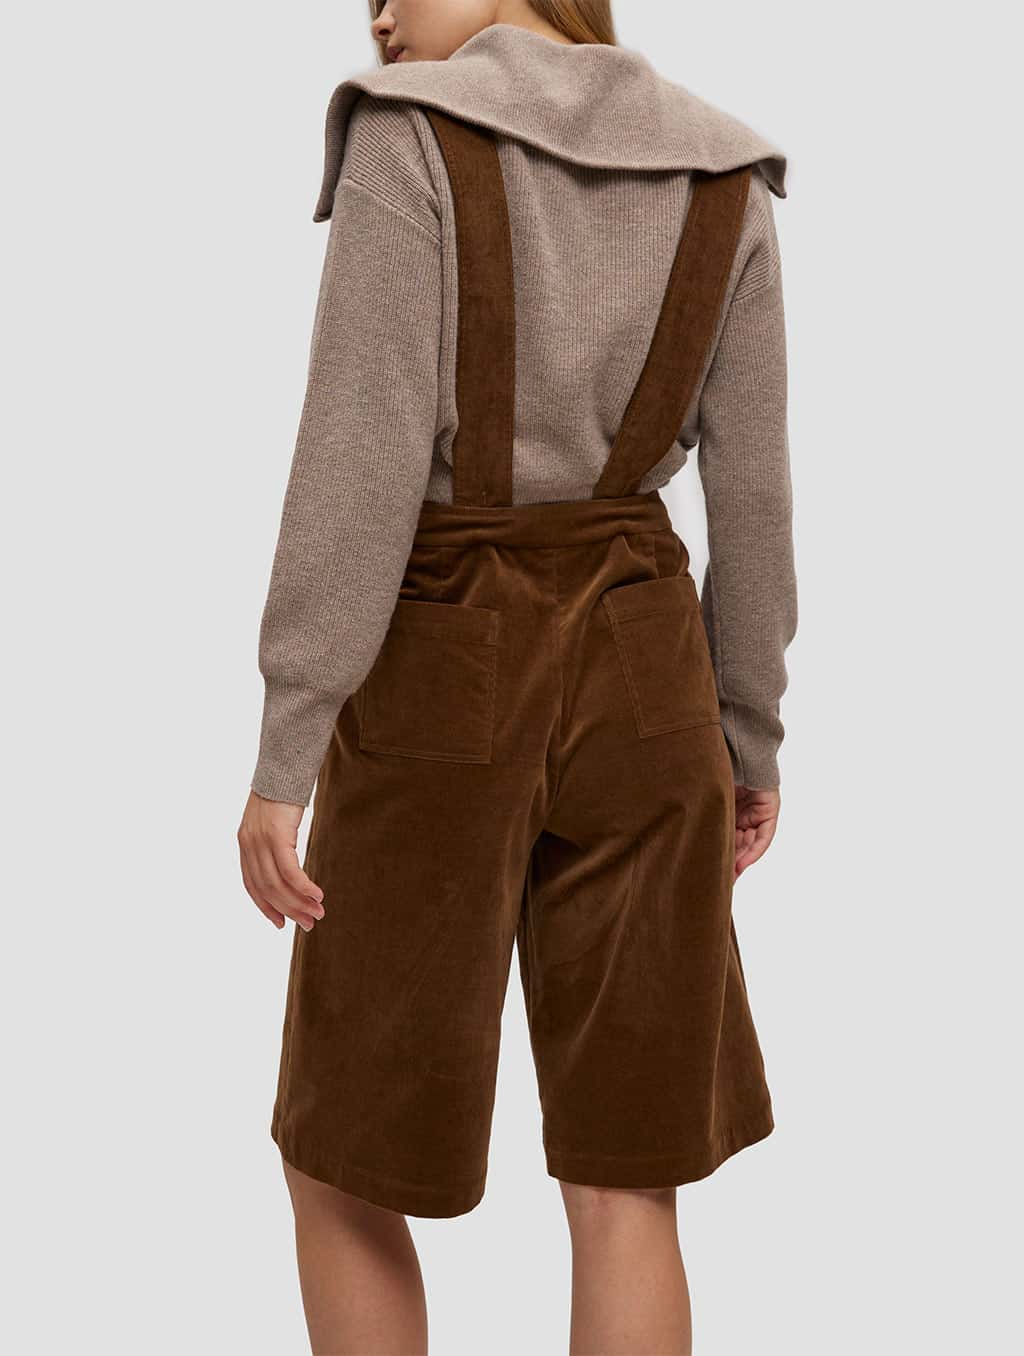 Overall Shorts - back- brown